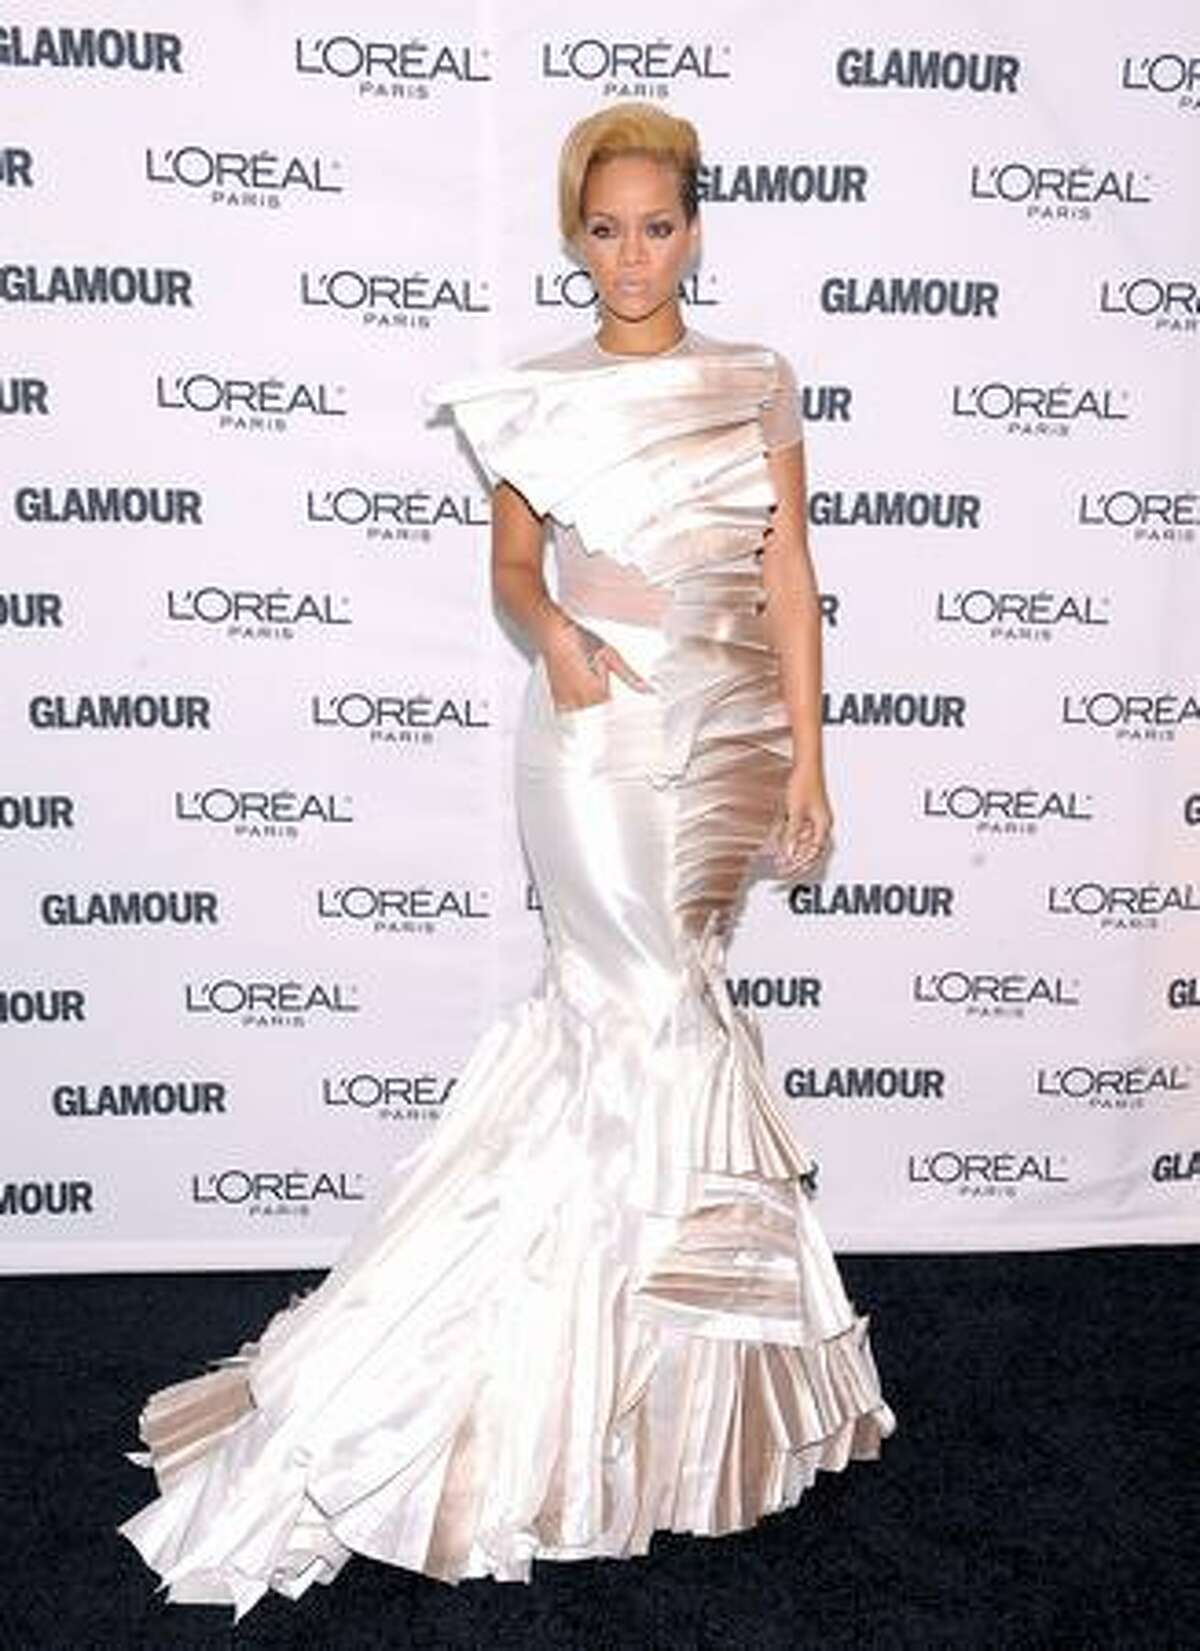 Singer Rihanna attends the Glamour Magazine 2009 Women of The Year Honors at Carnegie Hall in New York City.